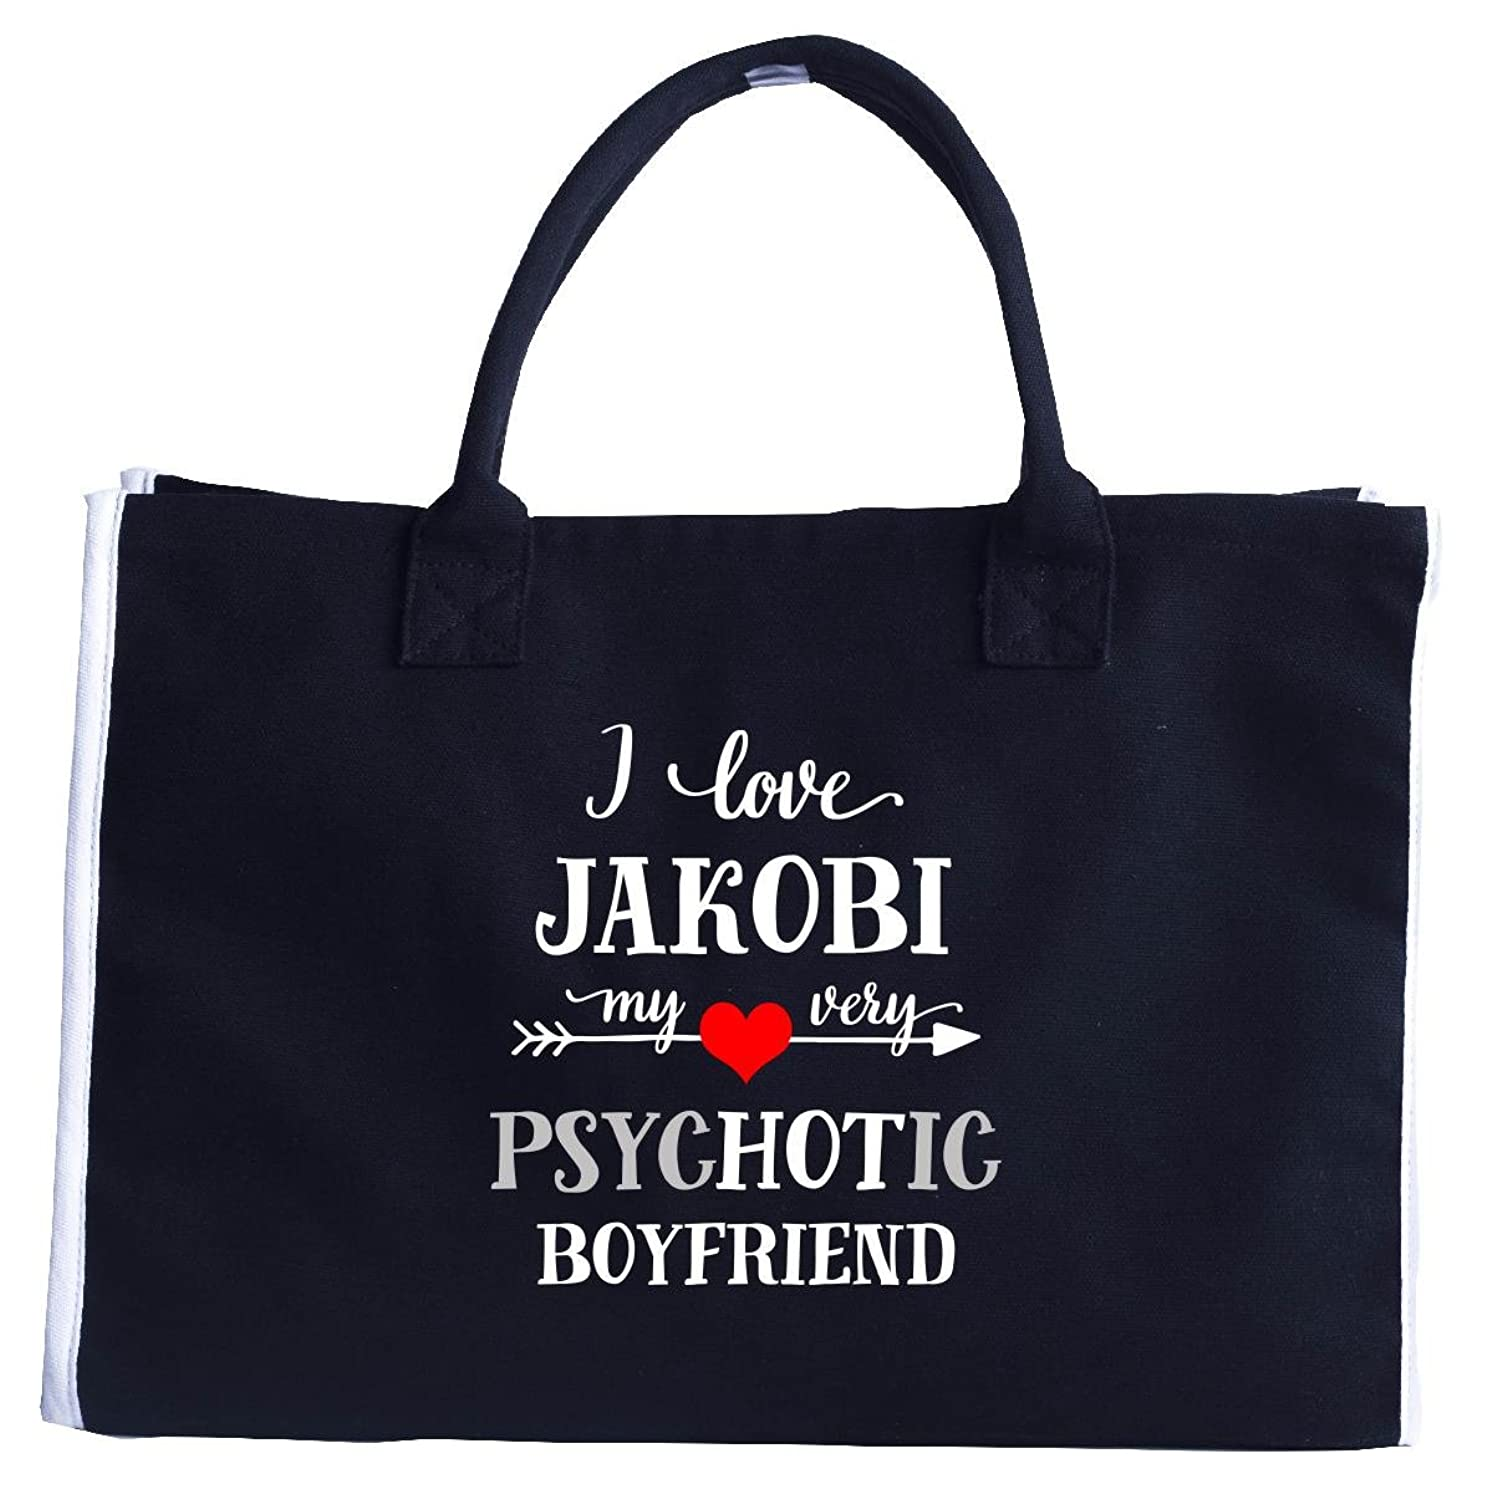 I Love Jakobi My Very Psychotic Boyfriend. Gift For Her - Fashion Tote Bag